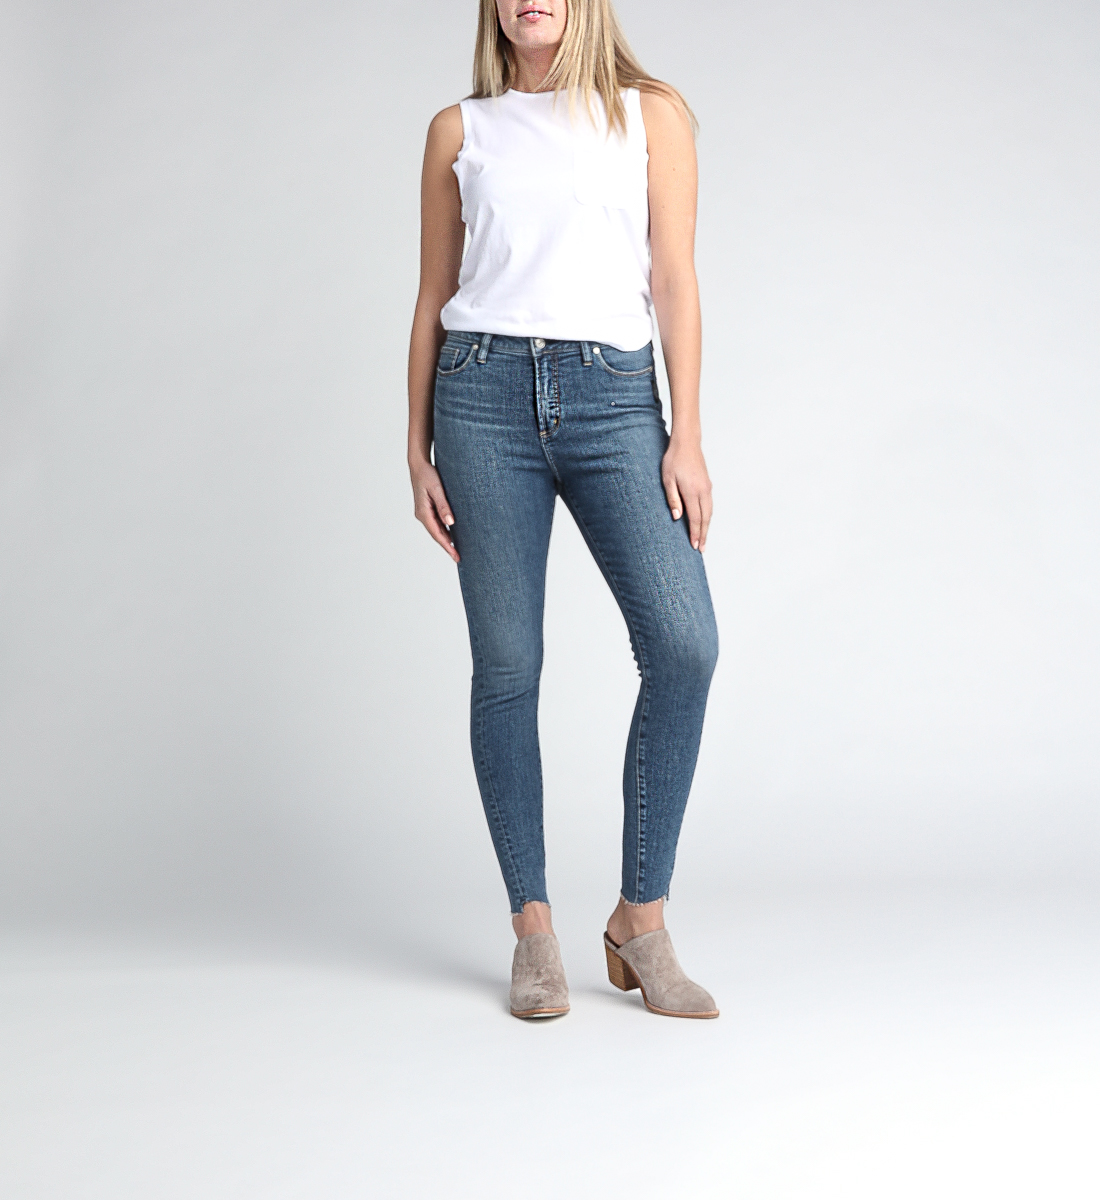 High Note High Rise Skinny Leg Jeans Alt Image 1